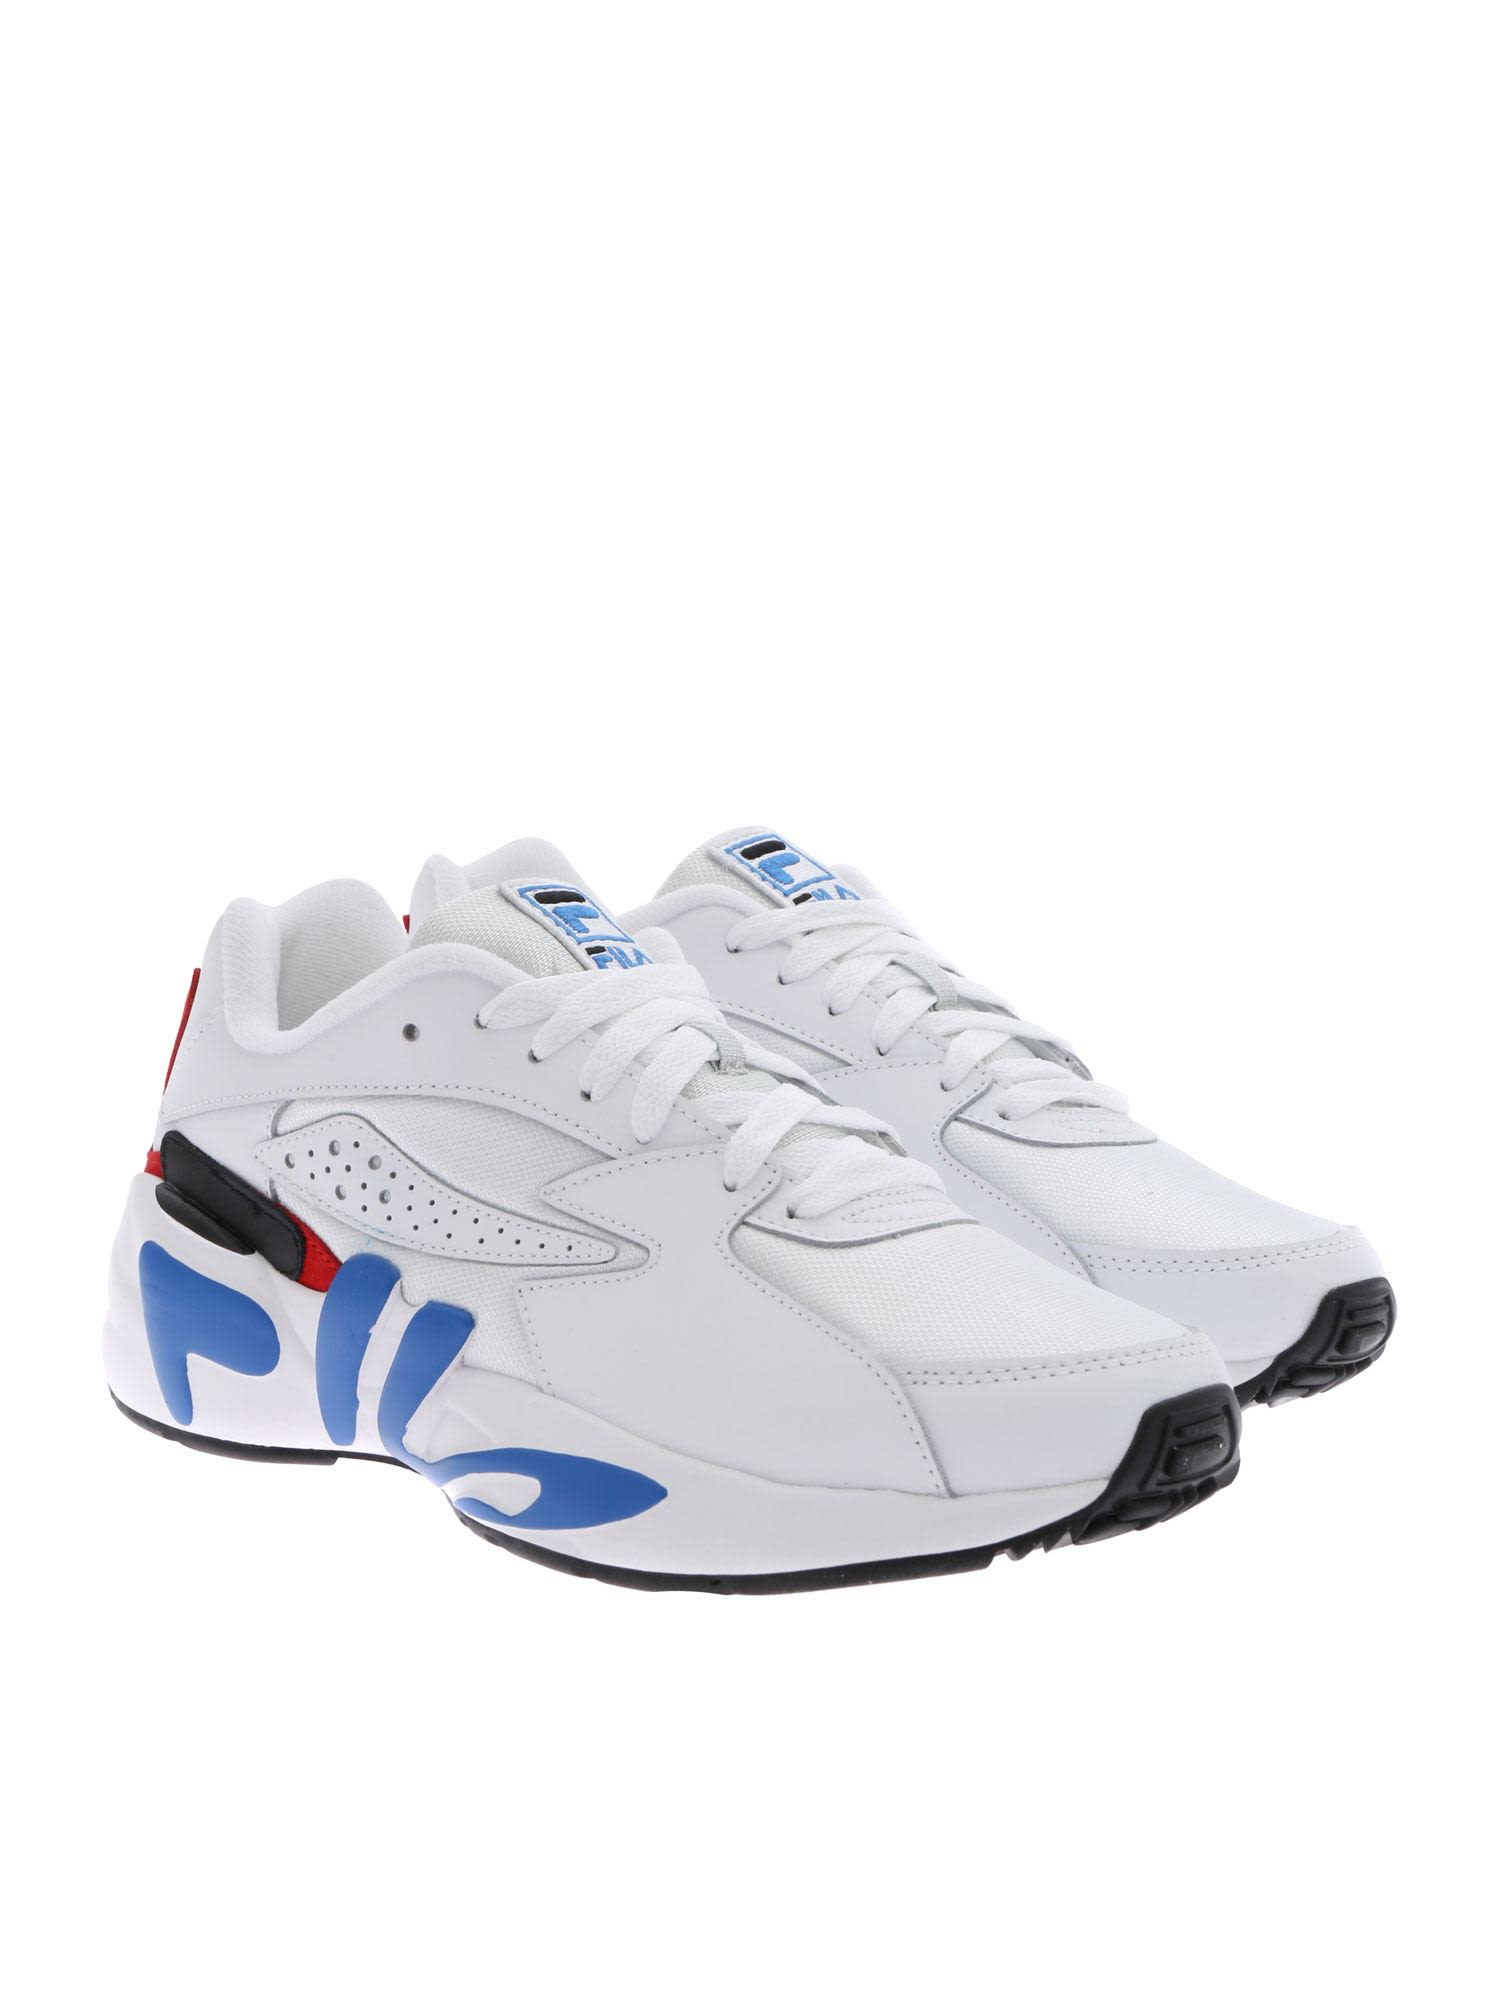 00e1607193be Fila White Mindblower Sneakers - Basic Fila White Mindblower Sneakers -  Basic ...